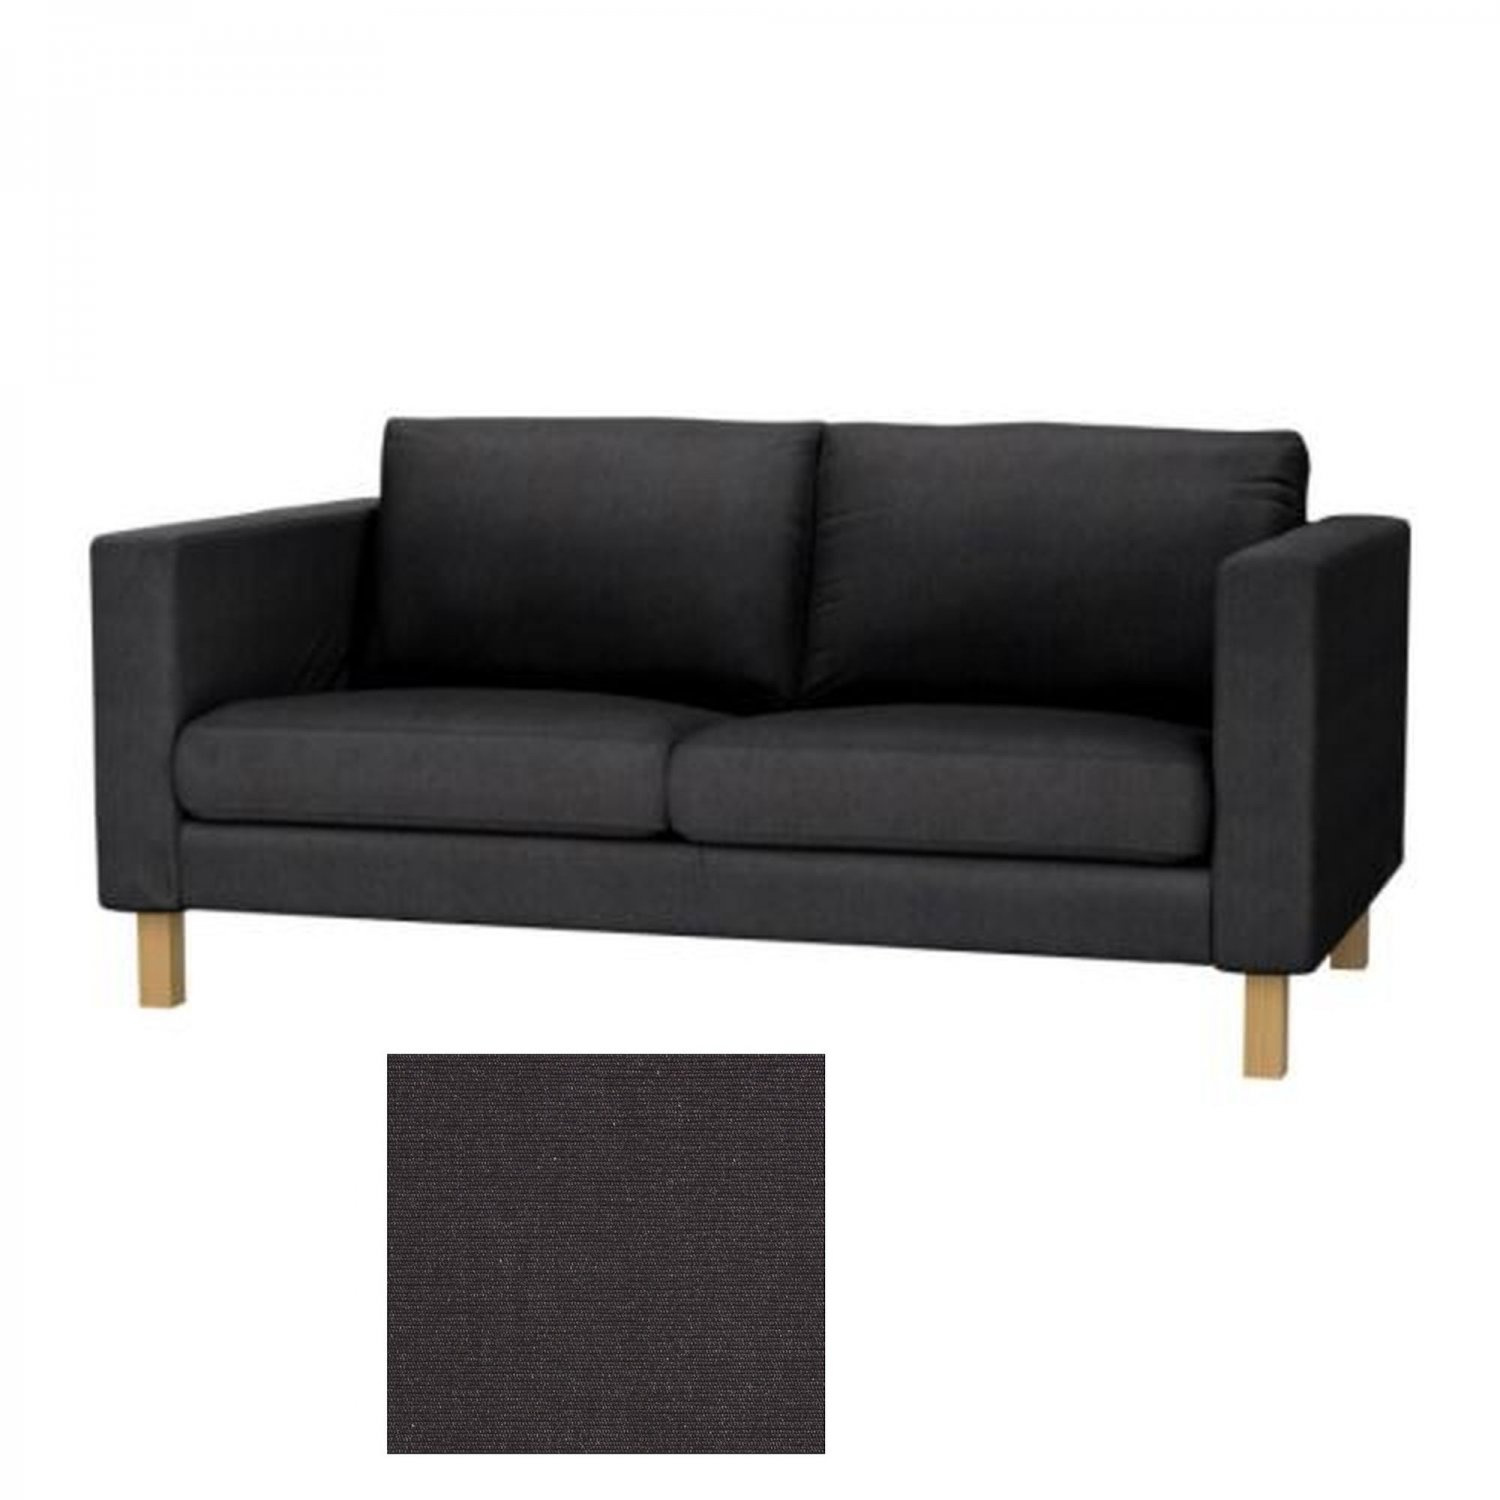 Covers For Ikea Karlstad Sofa: Ikea KARLSTAD 2 Seat Sofa SLIPCOVER Loveseat Cover SIVIK